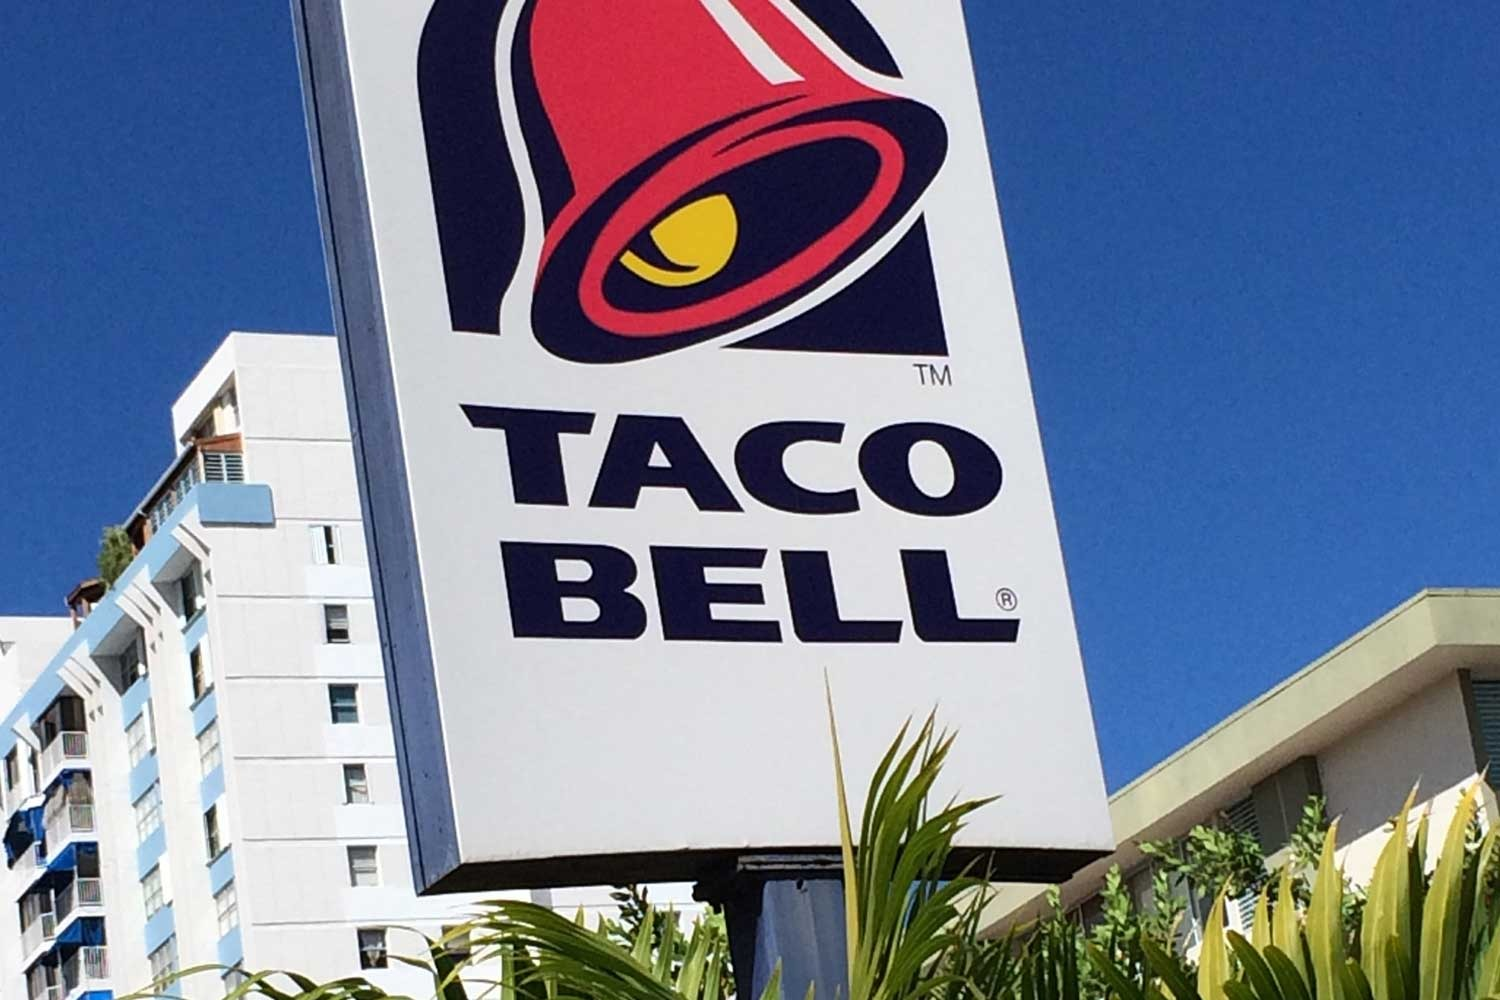 Taco Bell Hotel: Fast food chain to open Palm Springs resort